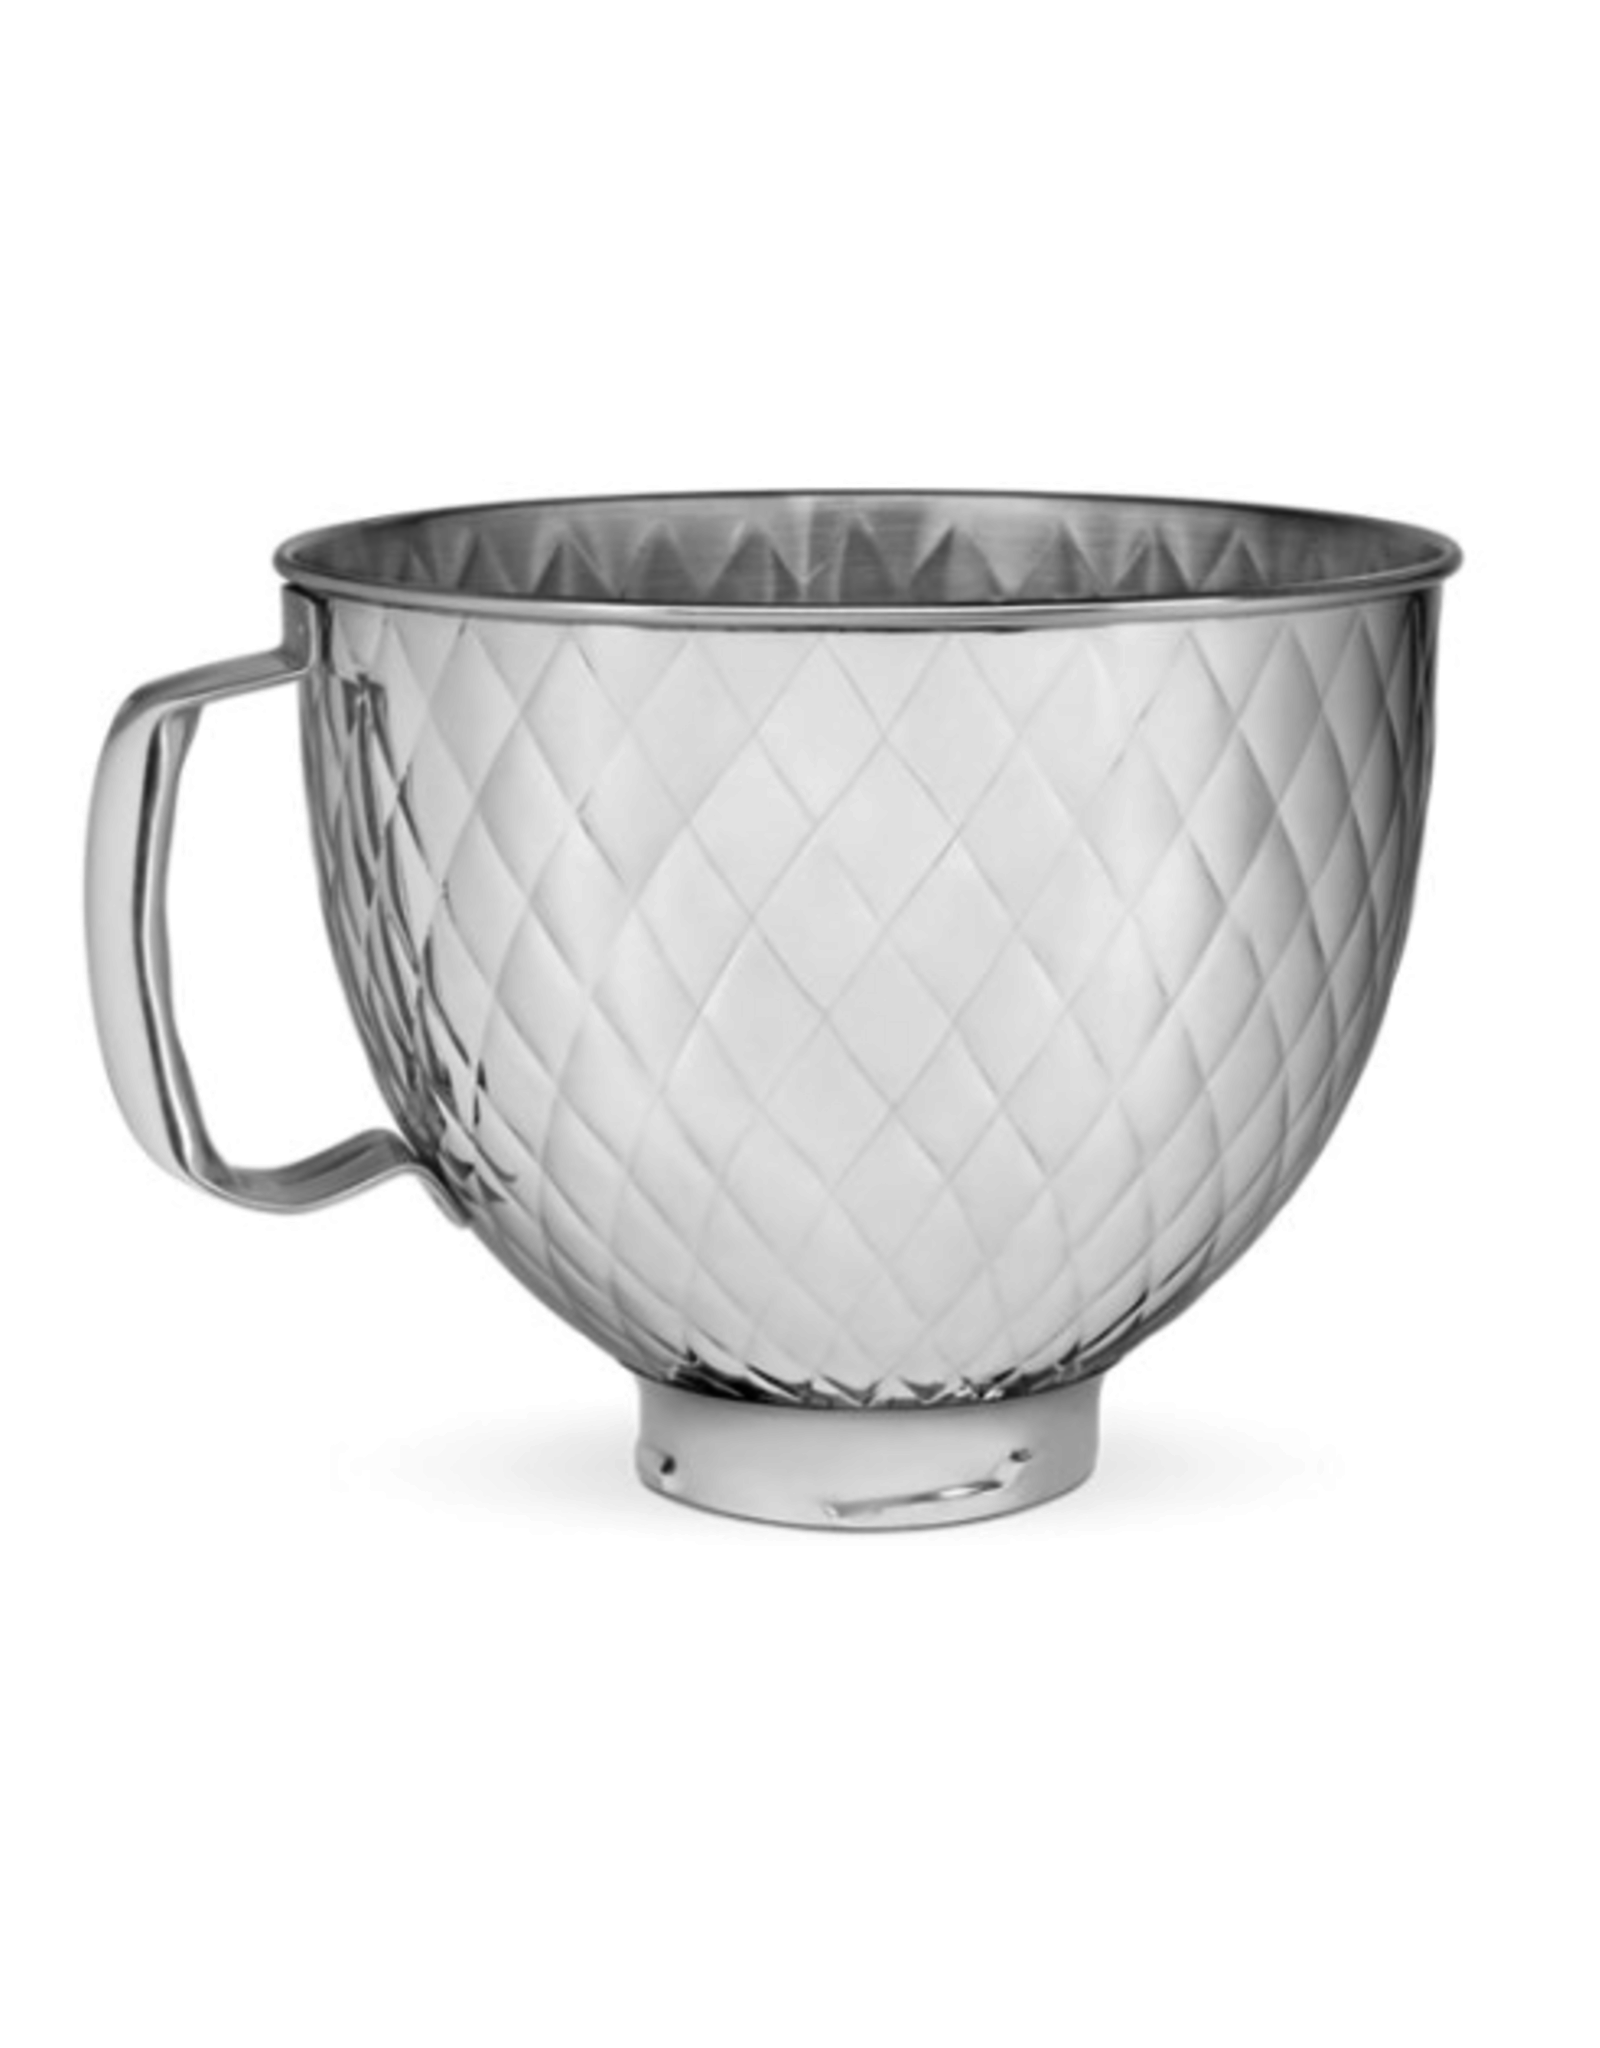 KitchenAid 5 Qt. Stainless Quilted Steel Bowl with ergo handle